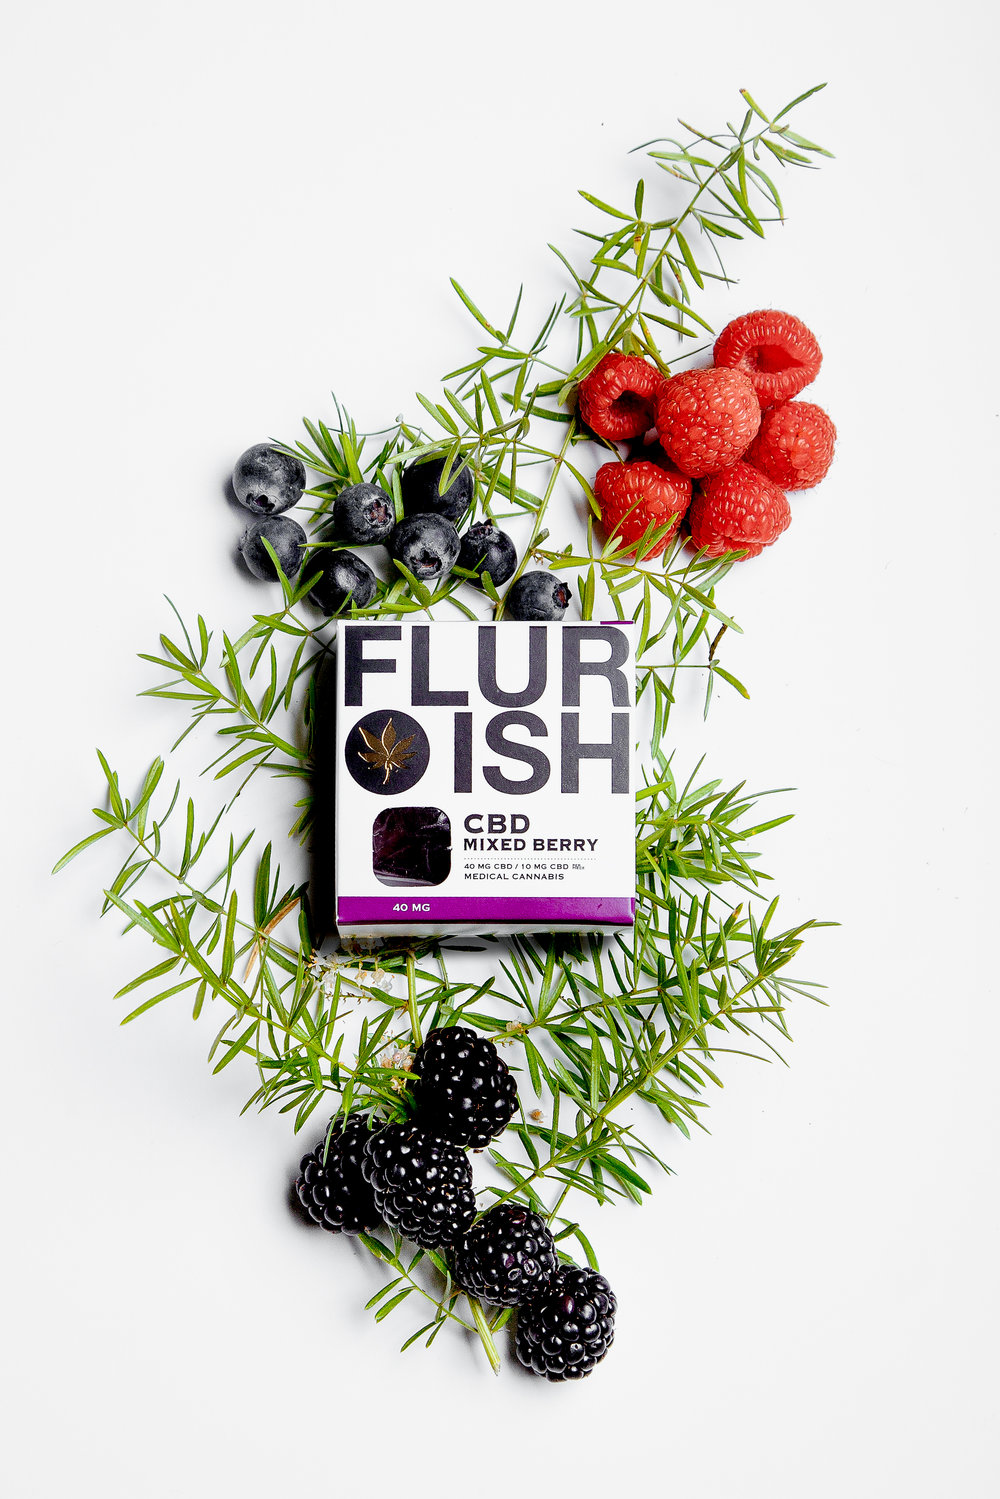 Flurish Group CBD